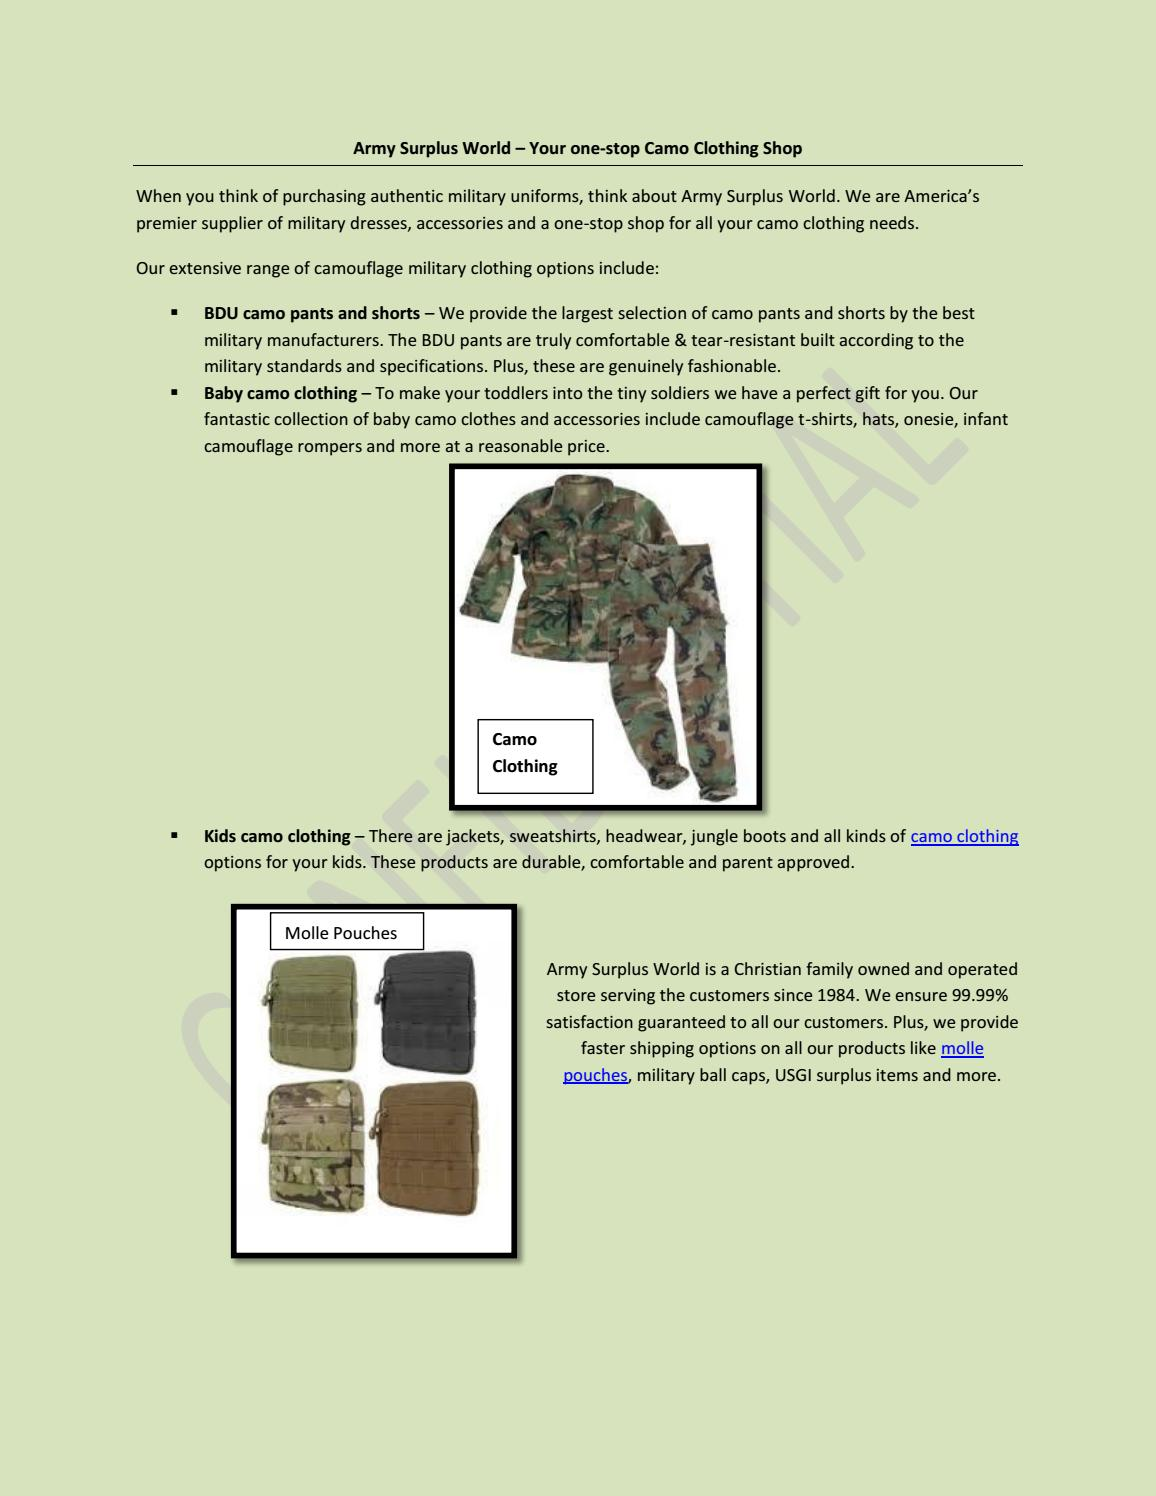 Army Surplus World – Your one-stop Camo Clothing Shop by